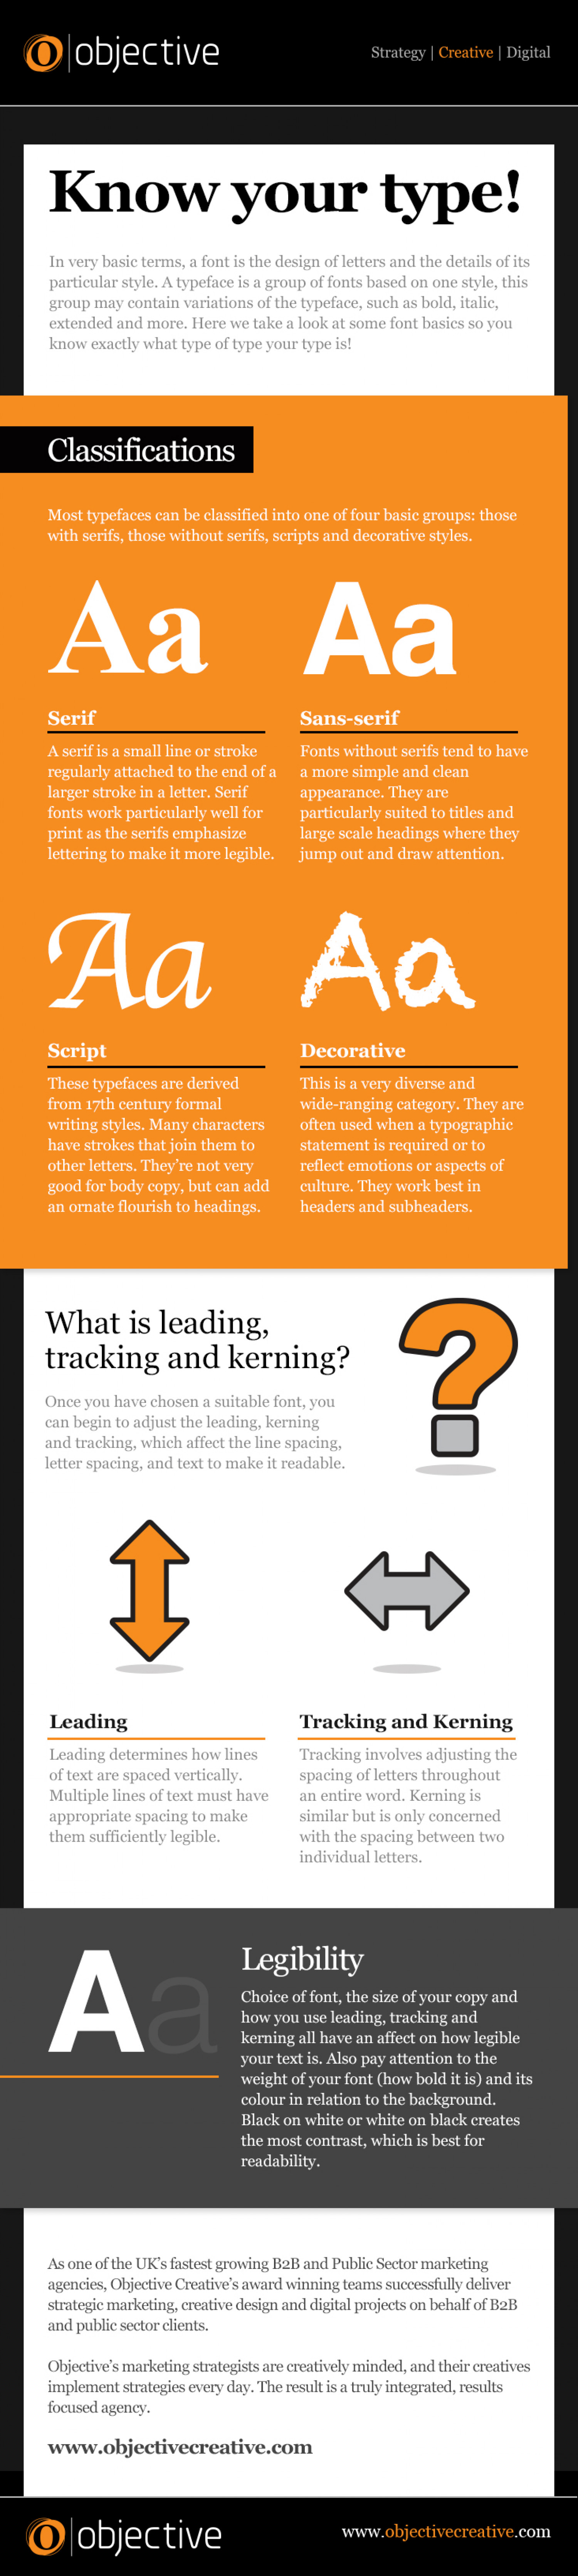 Know Your Type! Infographic